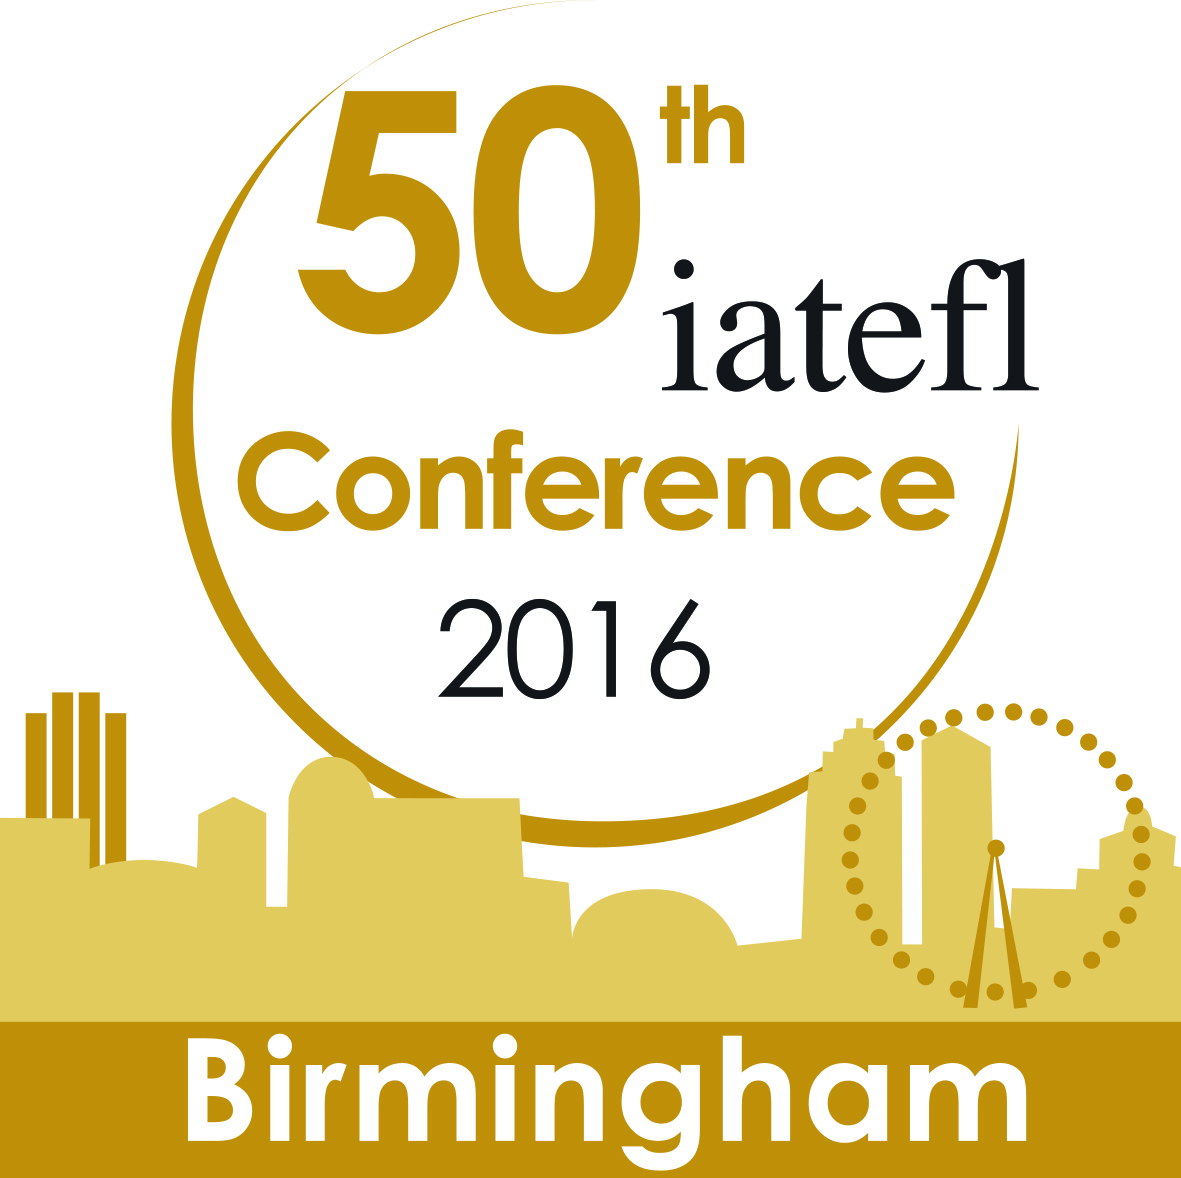 NEU English Preparatory School will be represented at IATEFL Conference & Exhibition in UK